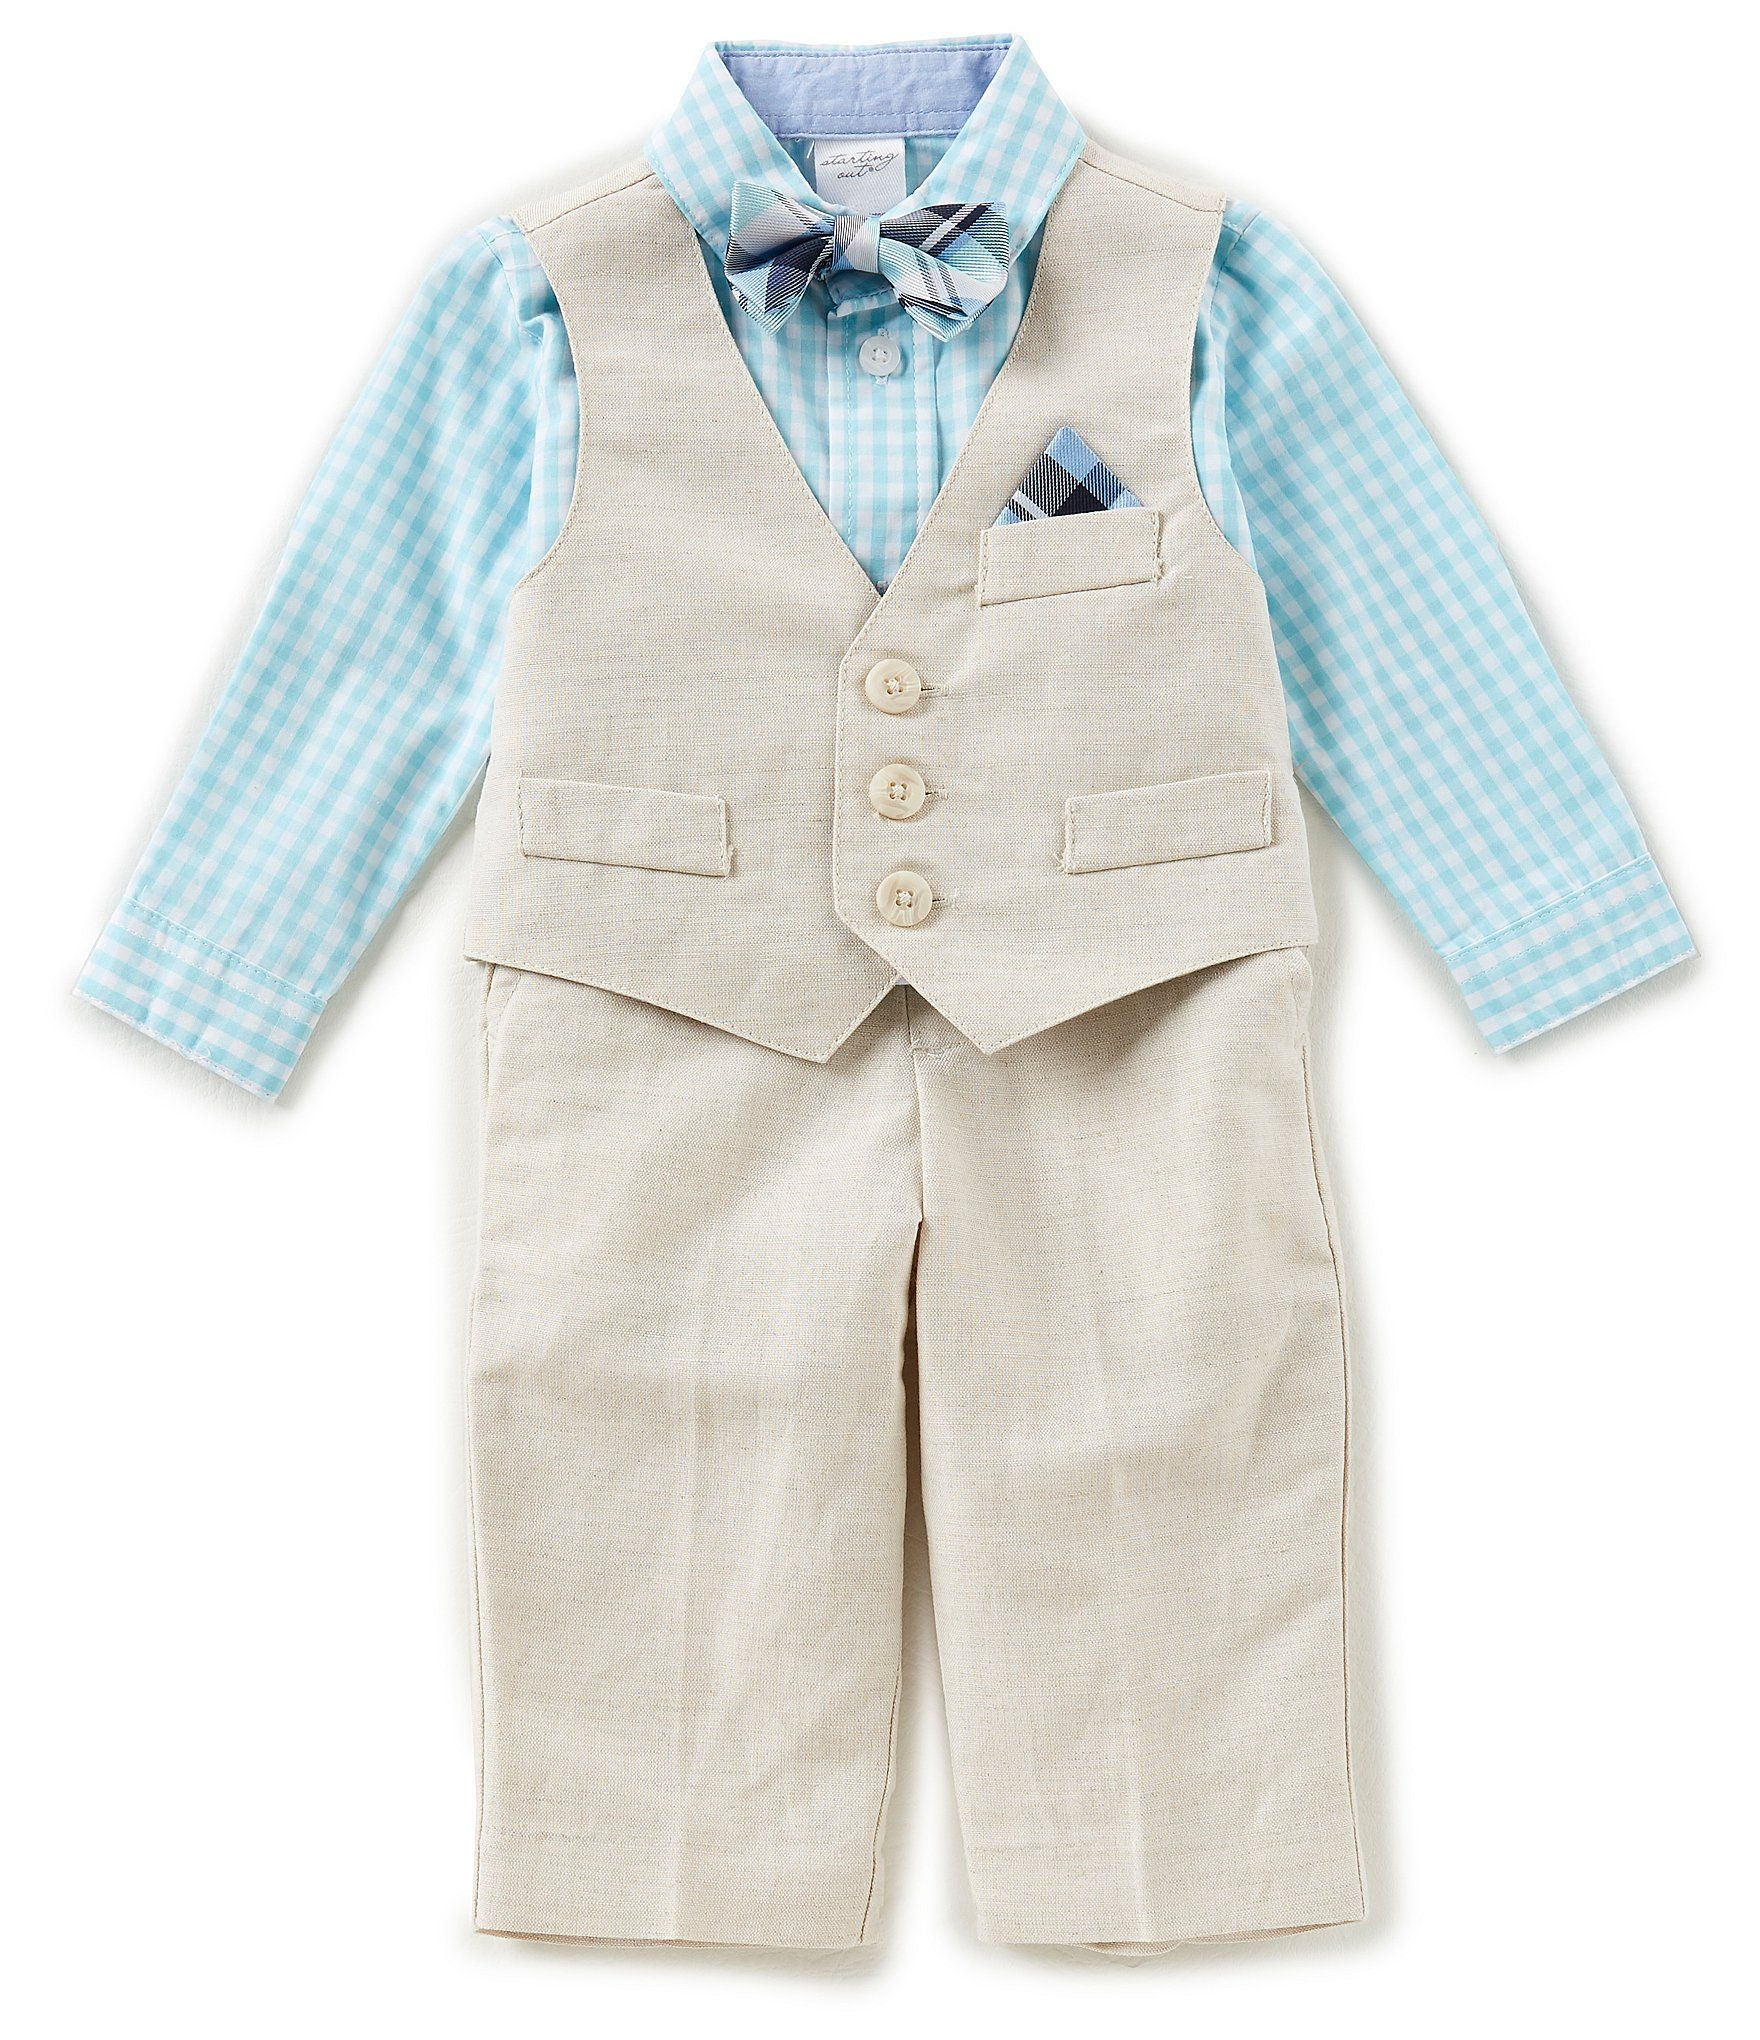 bf2182ebe ring bearer suit - beach wedding - khaki tan beige blue turquoise mint -  Shop for Class Club Little Boys 2T-7 Checked Button-Down Shirt, Vest,  Pants, ...